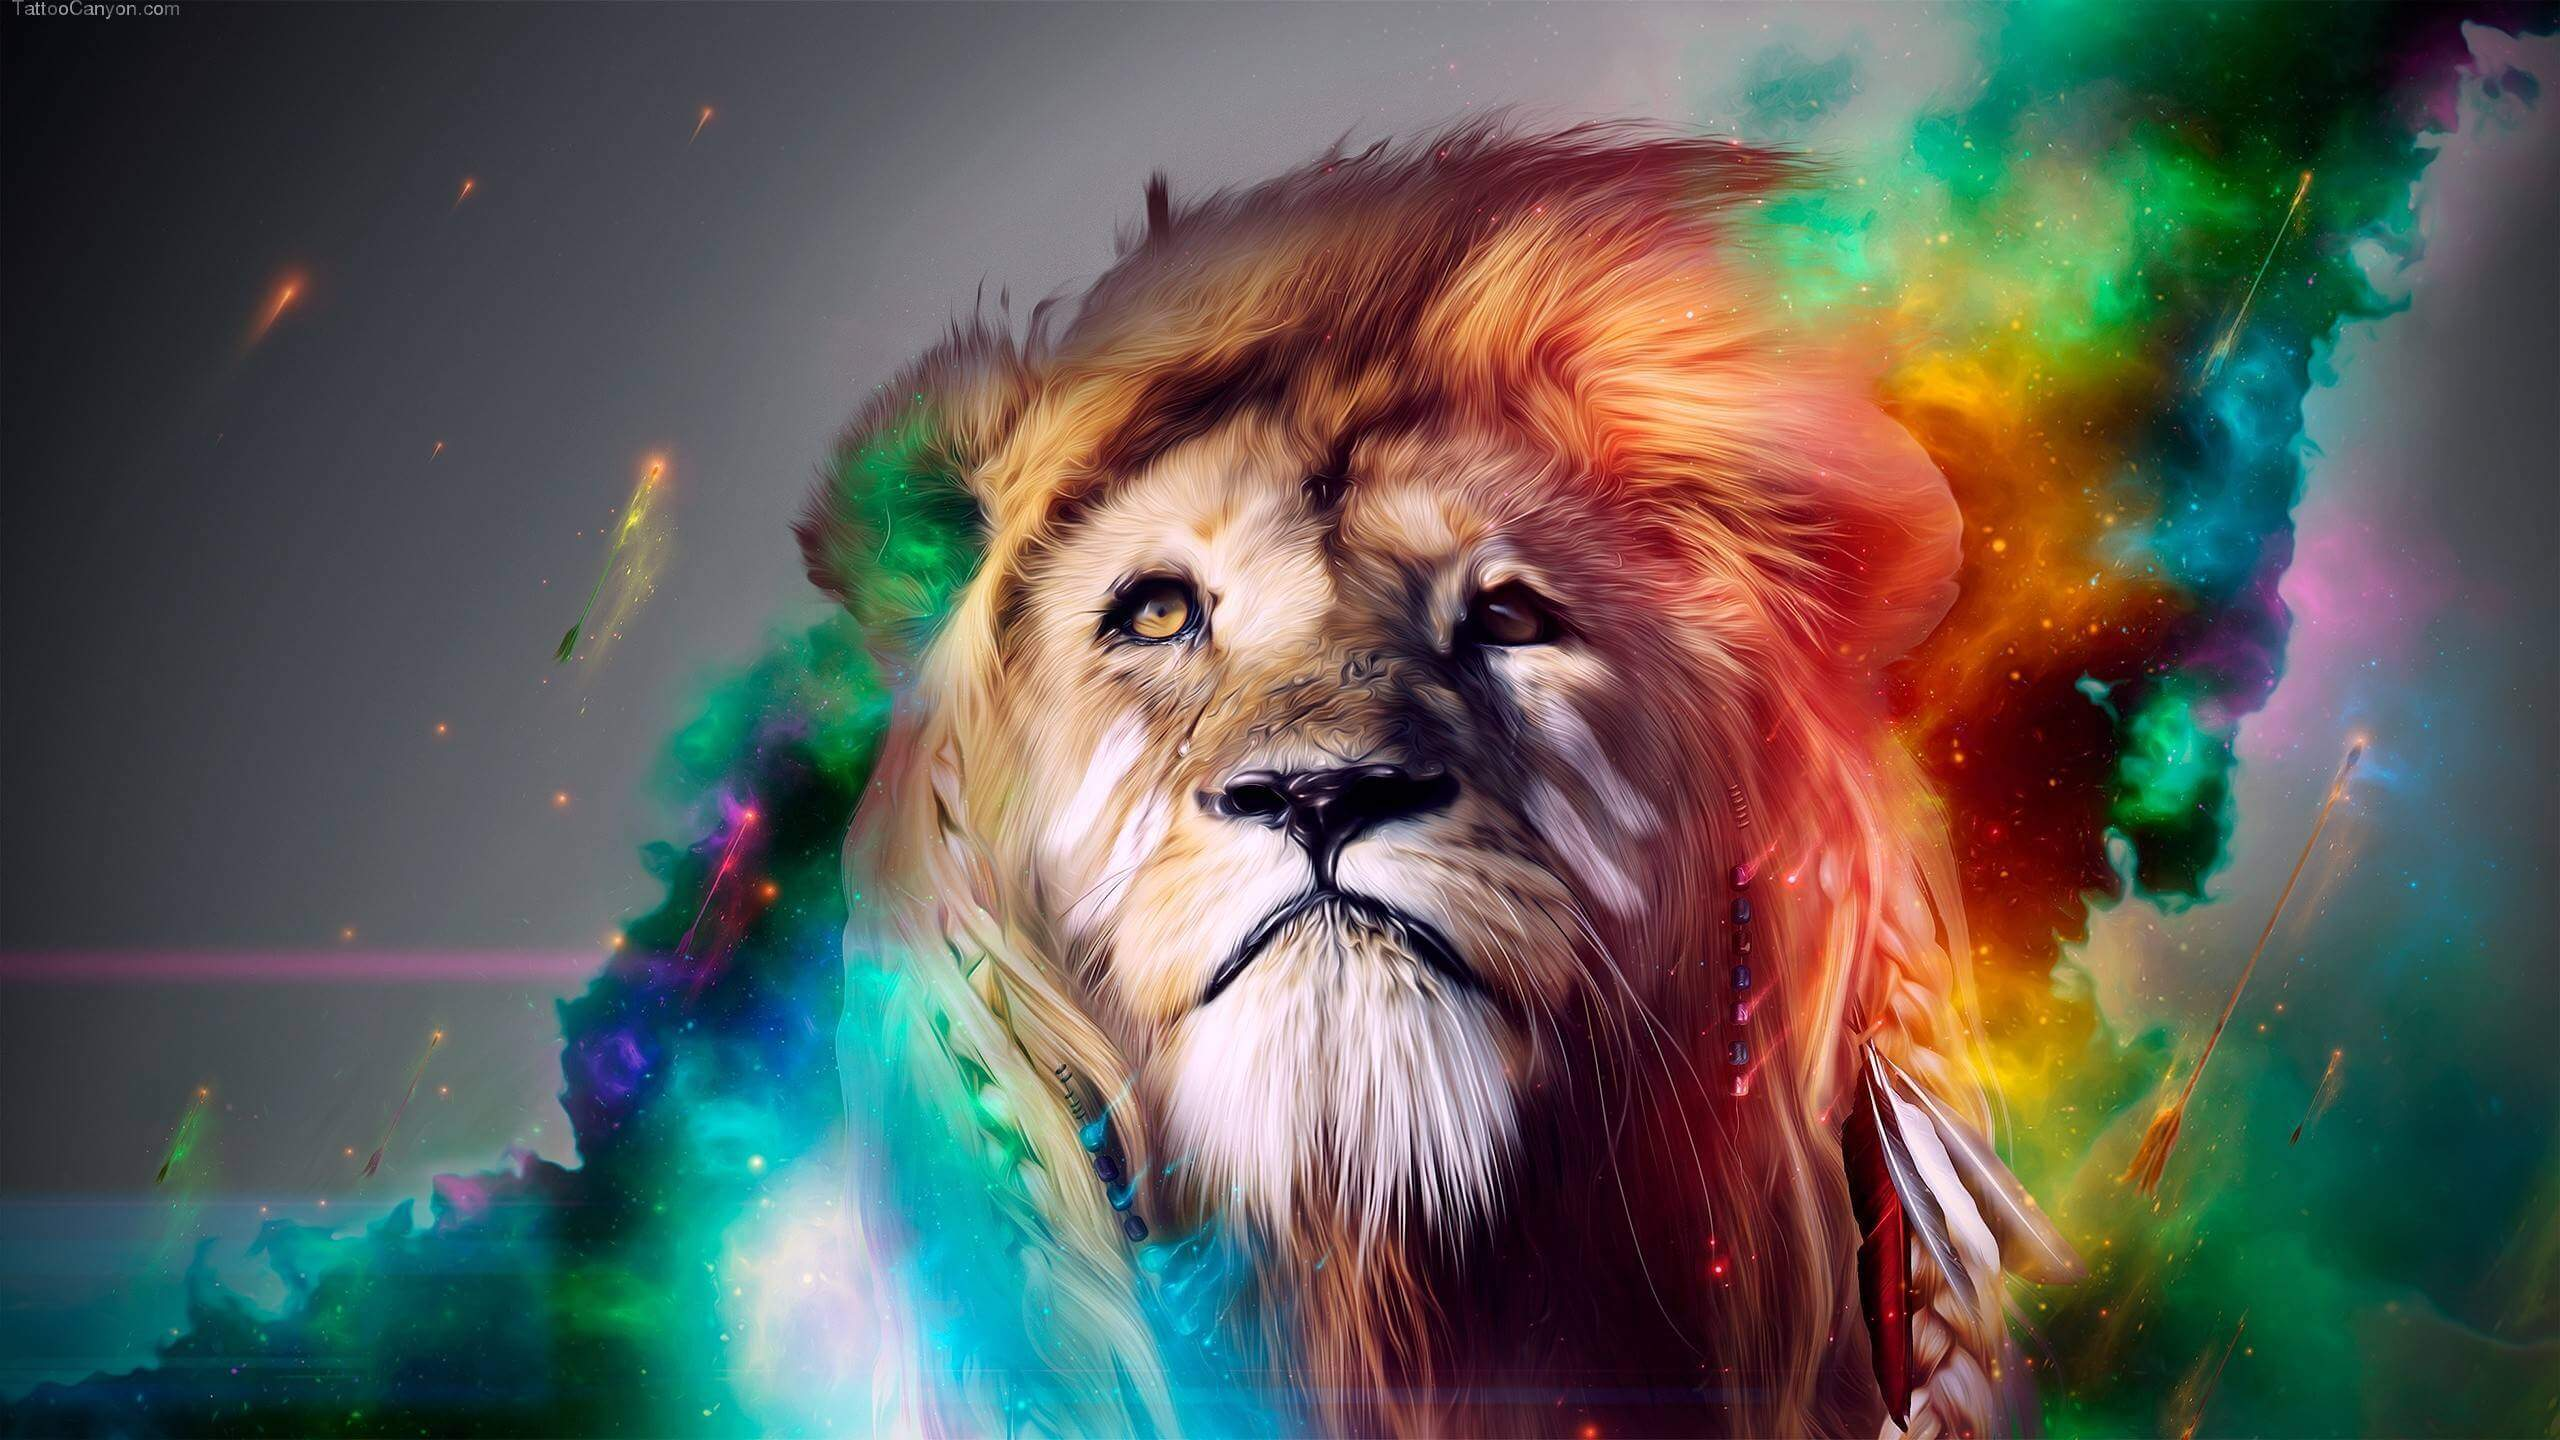 awesome photos - lion colored